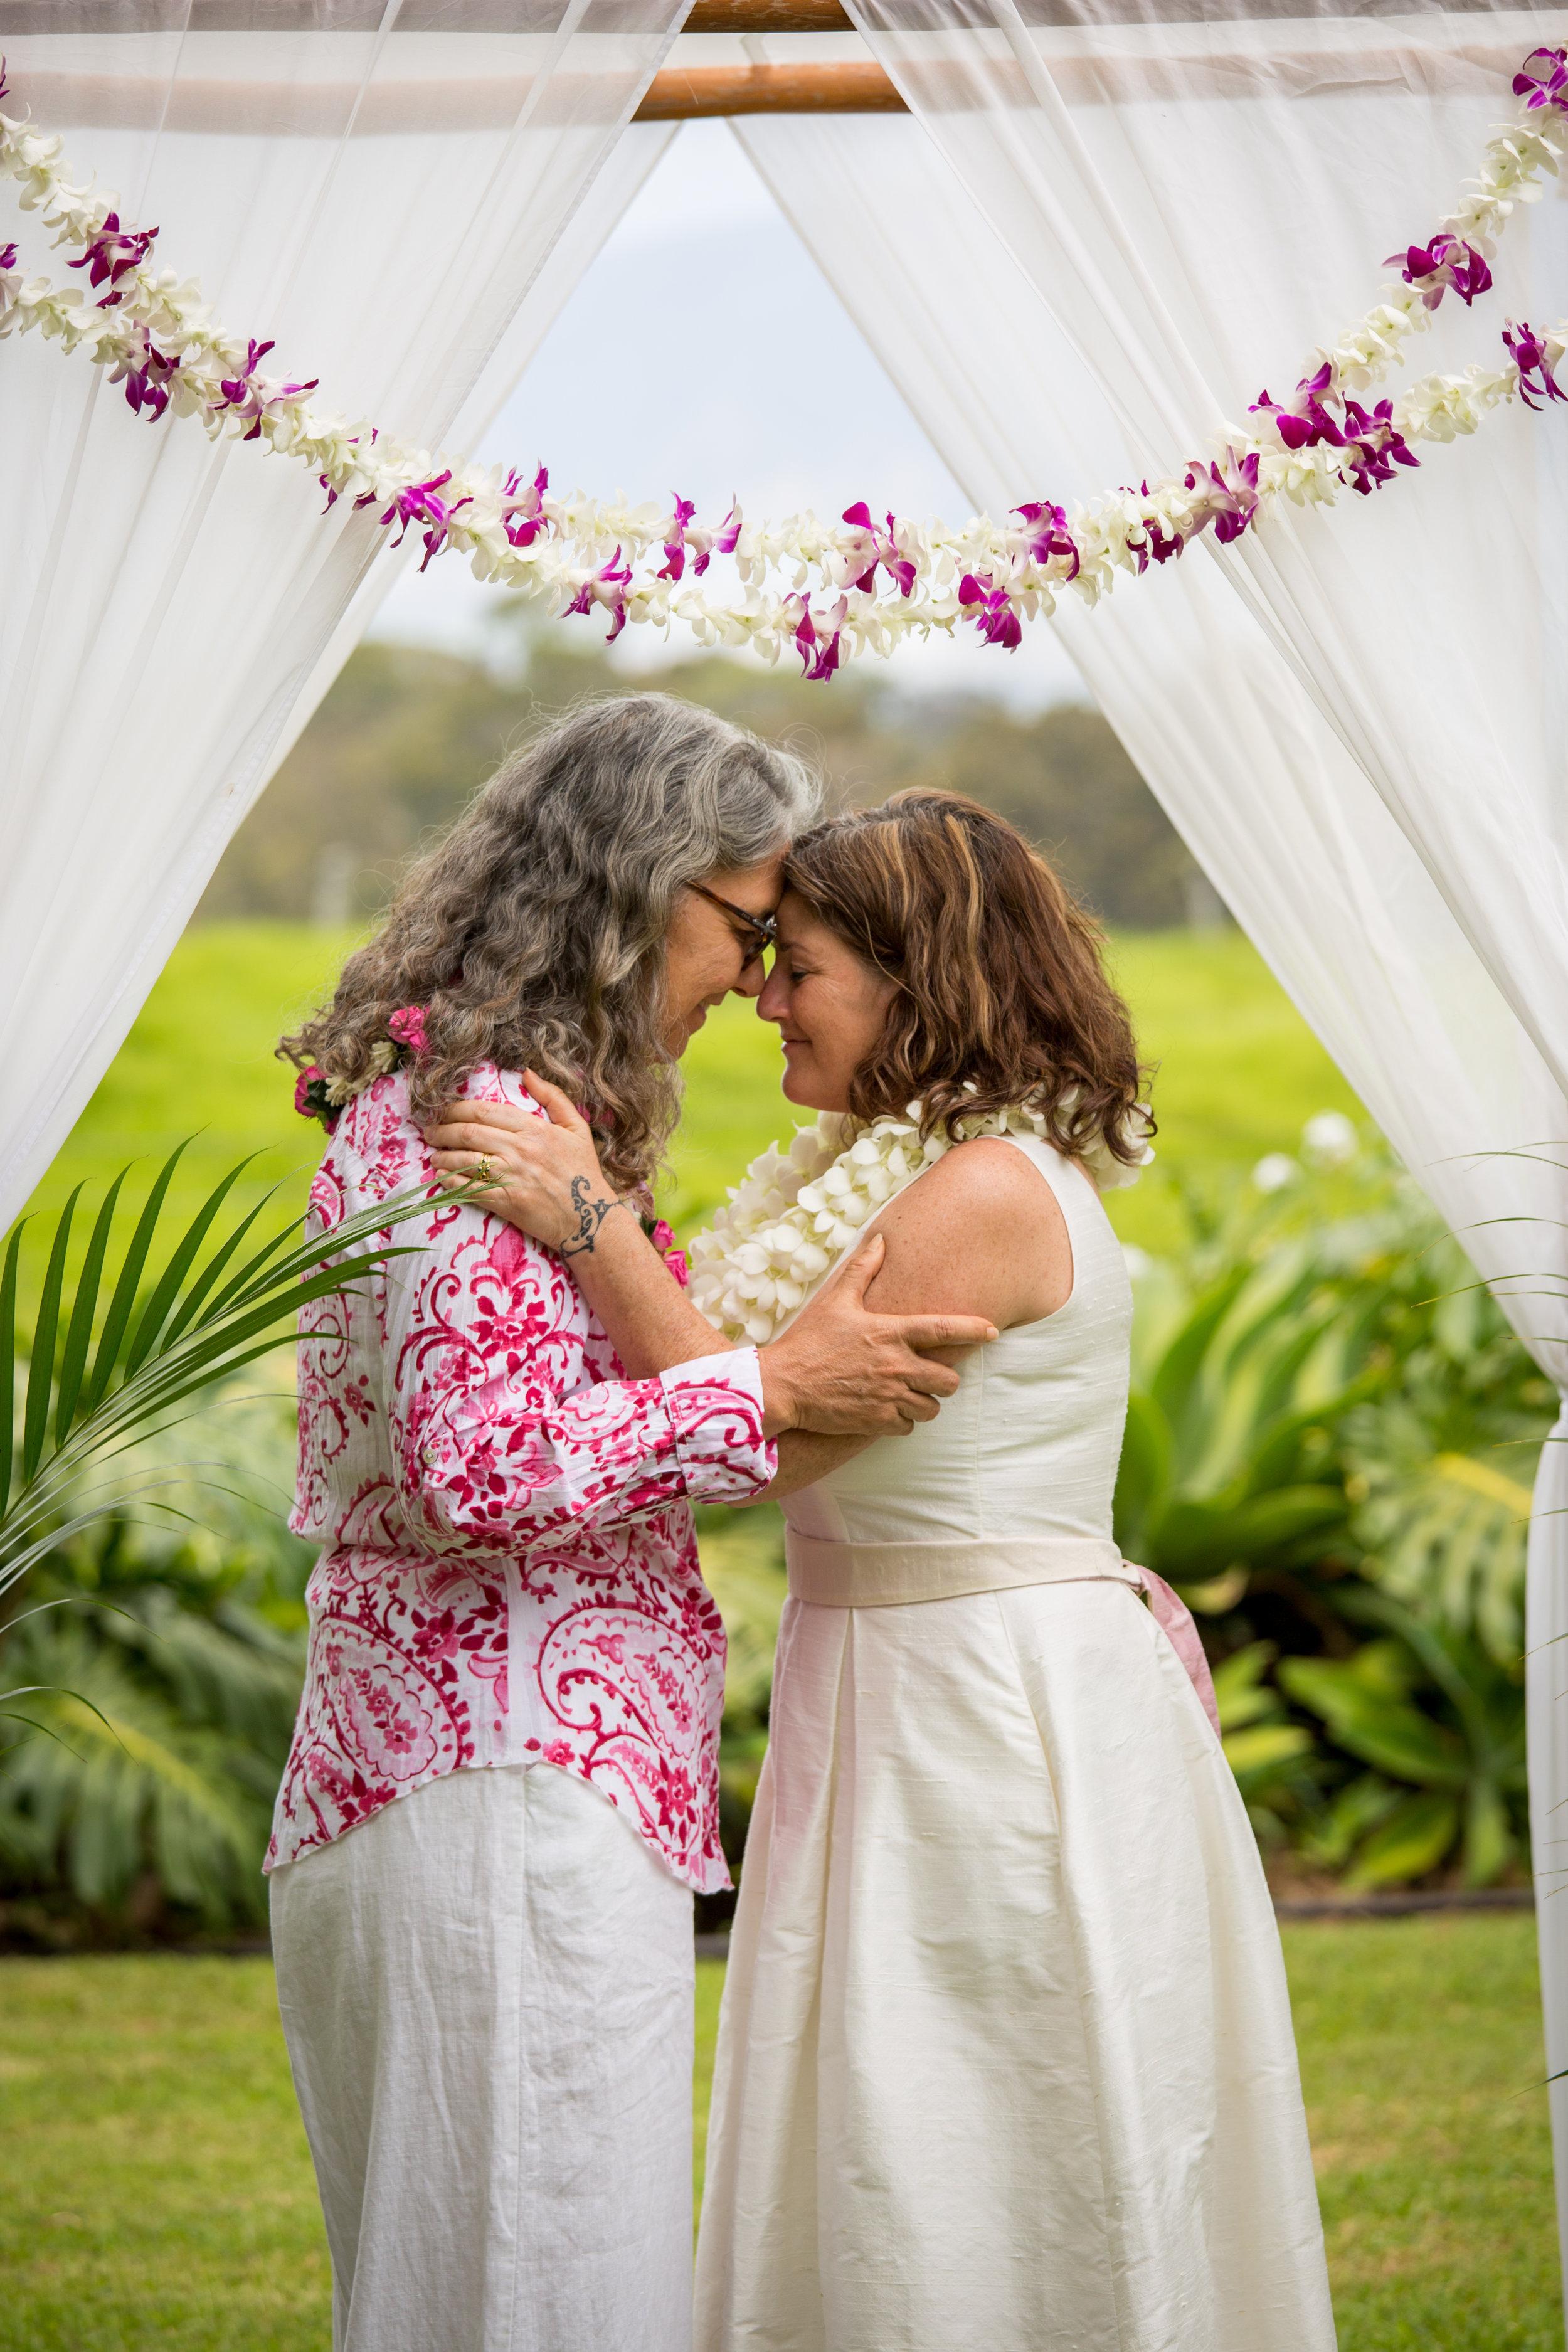 I just finished looking at our Maui Wedding Photos with Zelie - they are FANTASTIC! We LOVE them! You're amazing - we never even saw you, and yet you were everywhere and captured everything! Thank you're amazing! didn't ever realize just how beautiful it all was until I saw through your eyes/lens..  ~Lucia